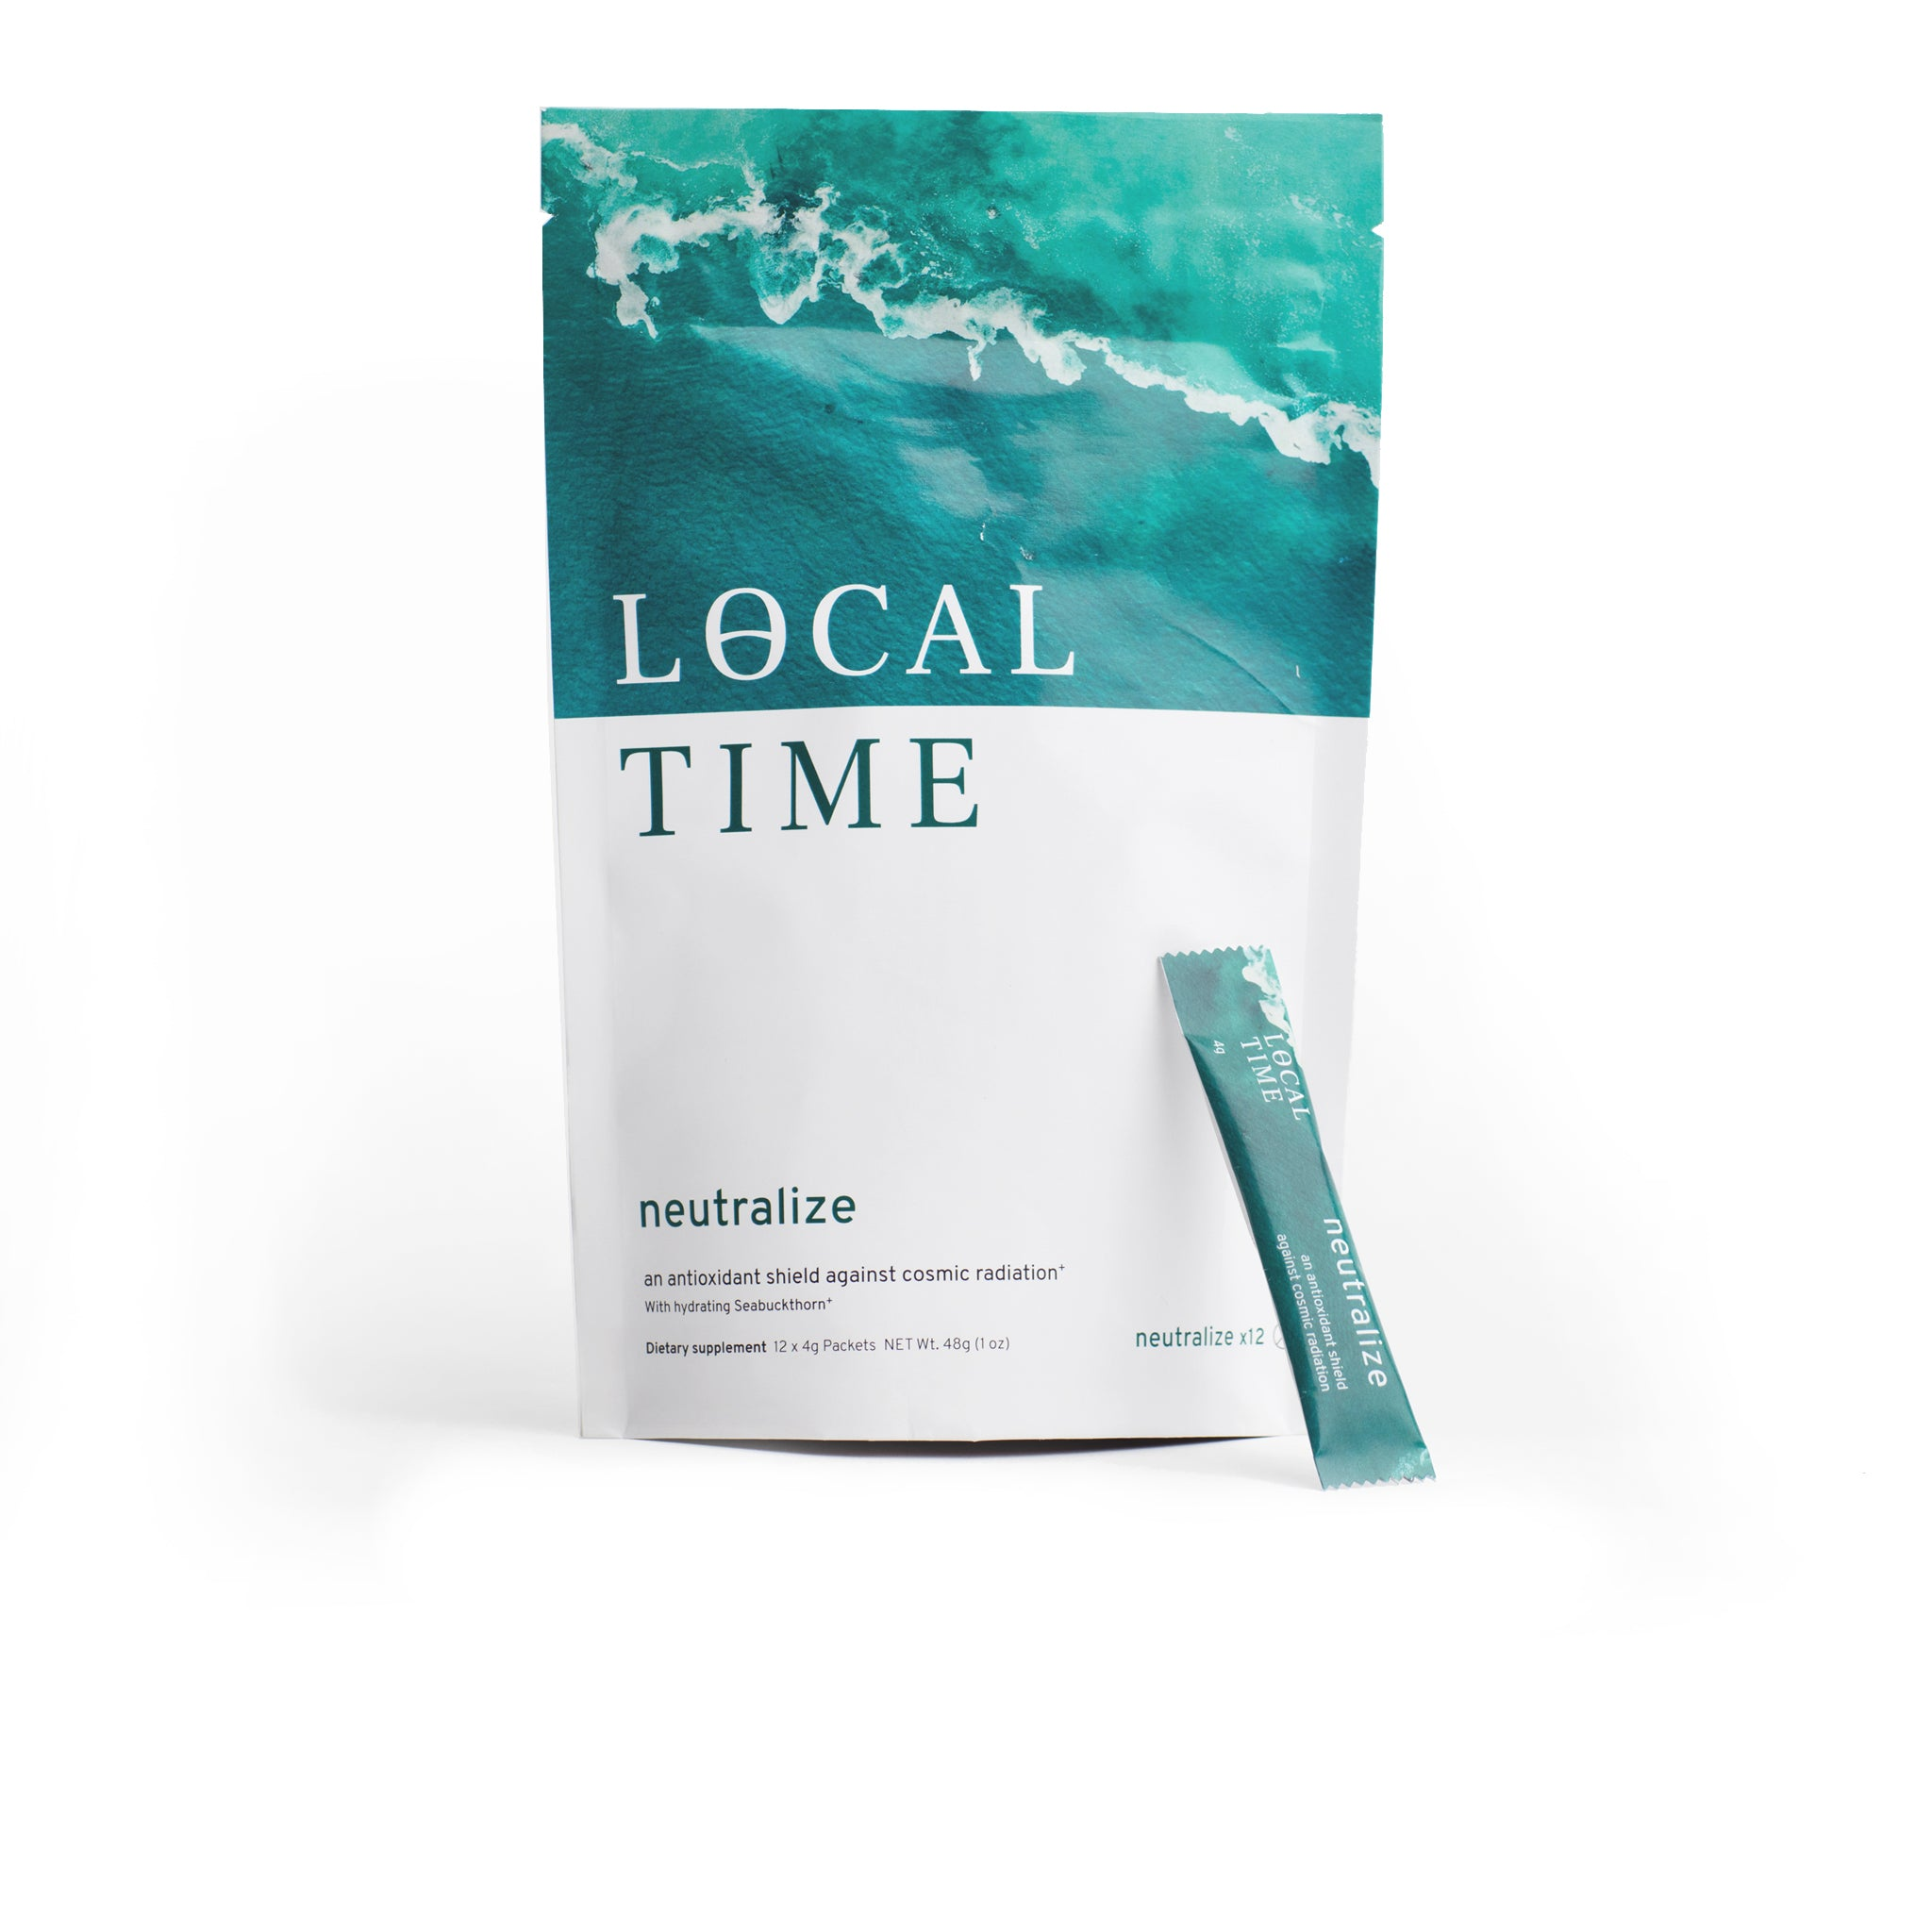 neutralize — antioxidant shield against cosmic radiation - onlocaltime